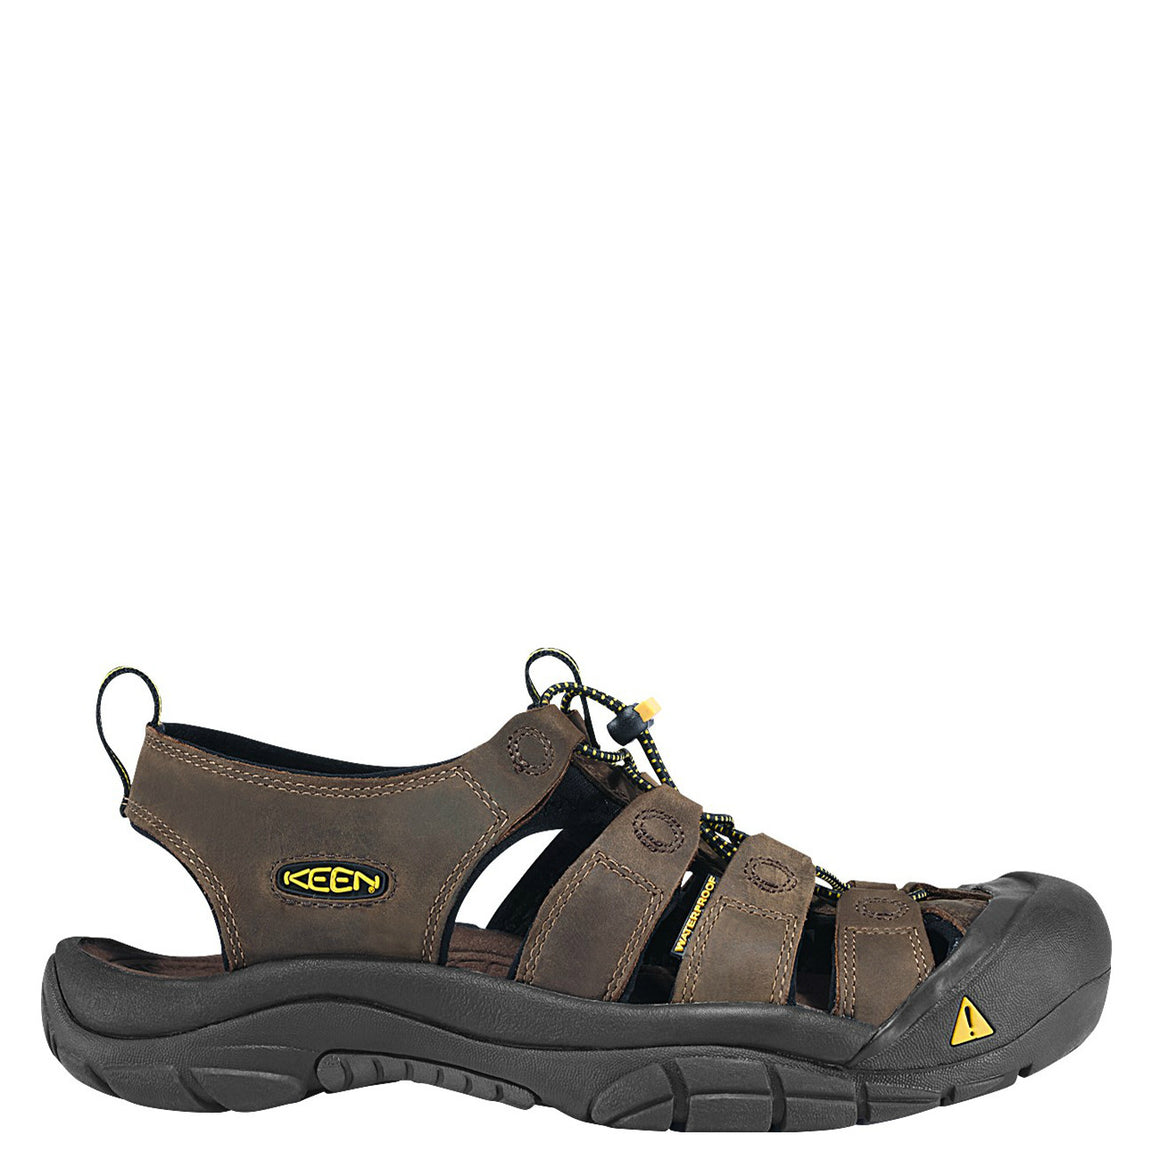 e788227b4682 Keen Men s Newport Sandal - Bison 1001870 - ShoeShackOnline